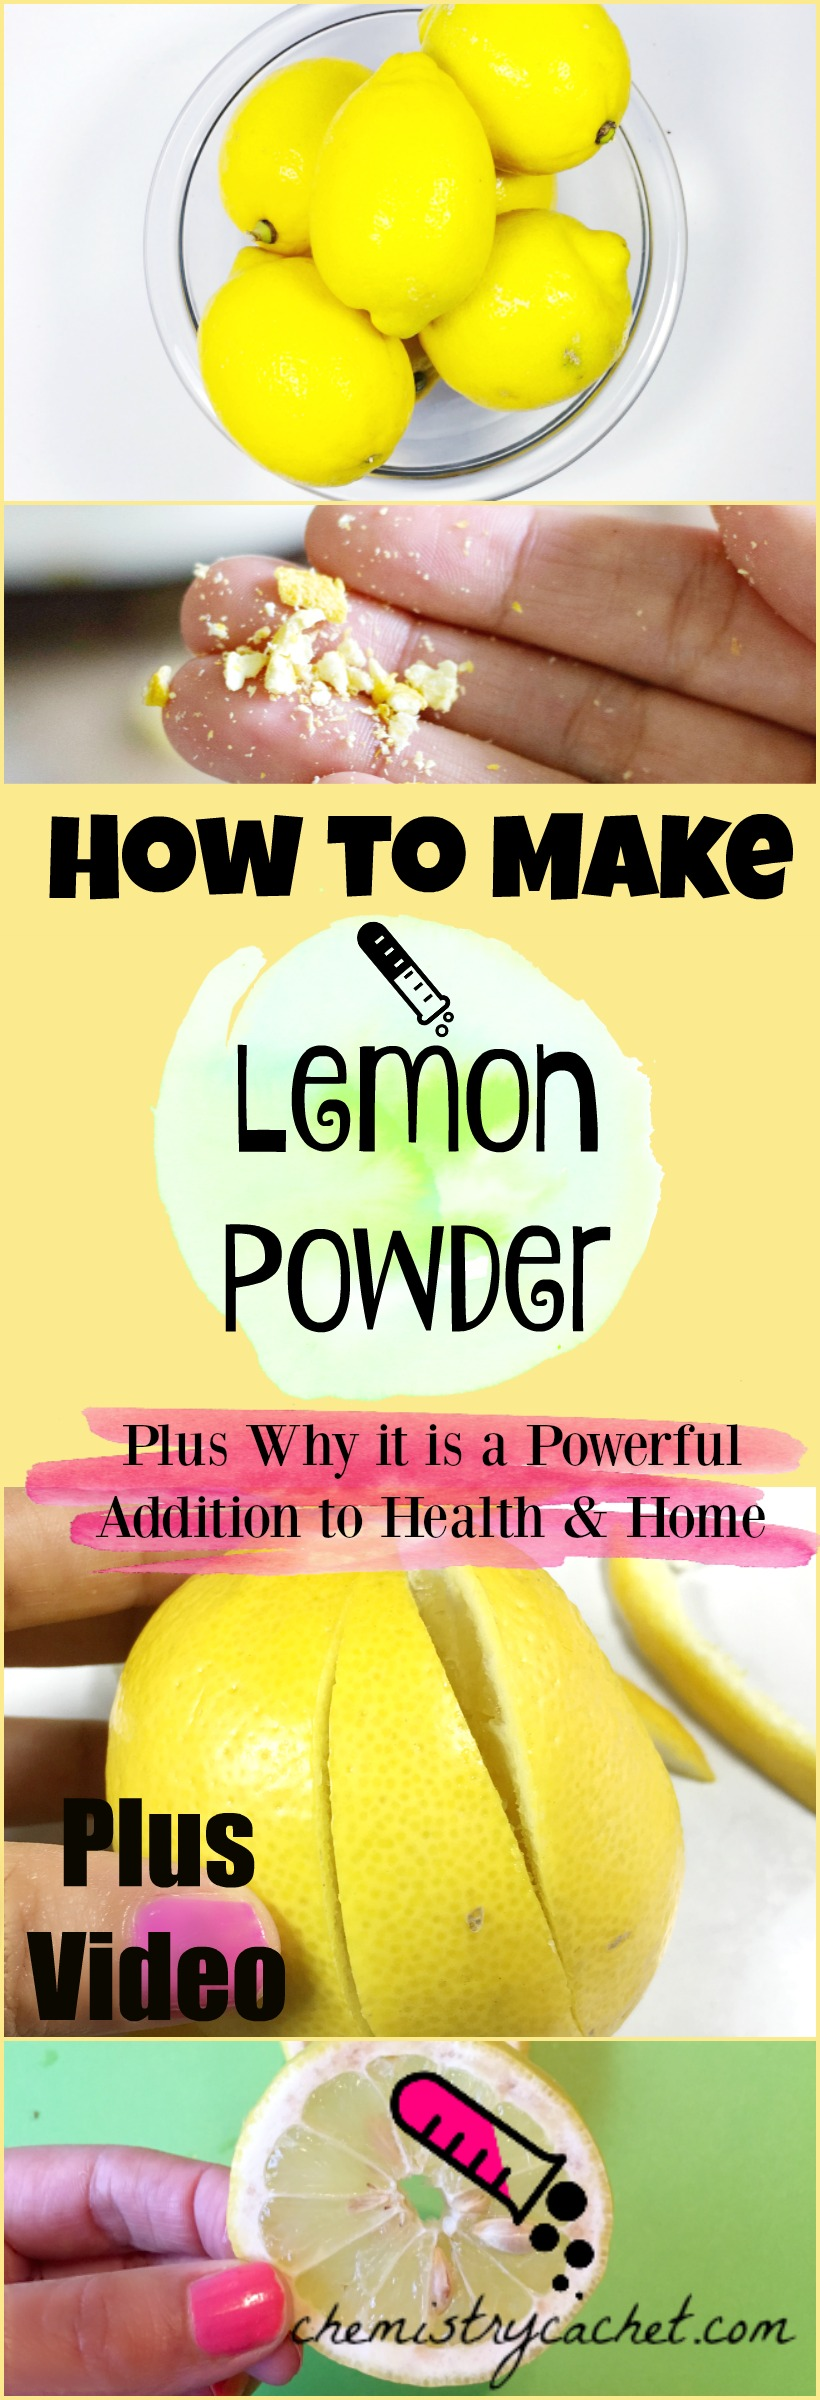 How to Make Lemon Powder. Plus why it's a POWERFUL addition to your health and home. Lemon powder video included and tutorial on chemistrycachet.com